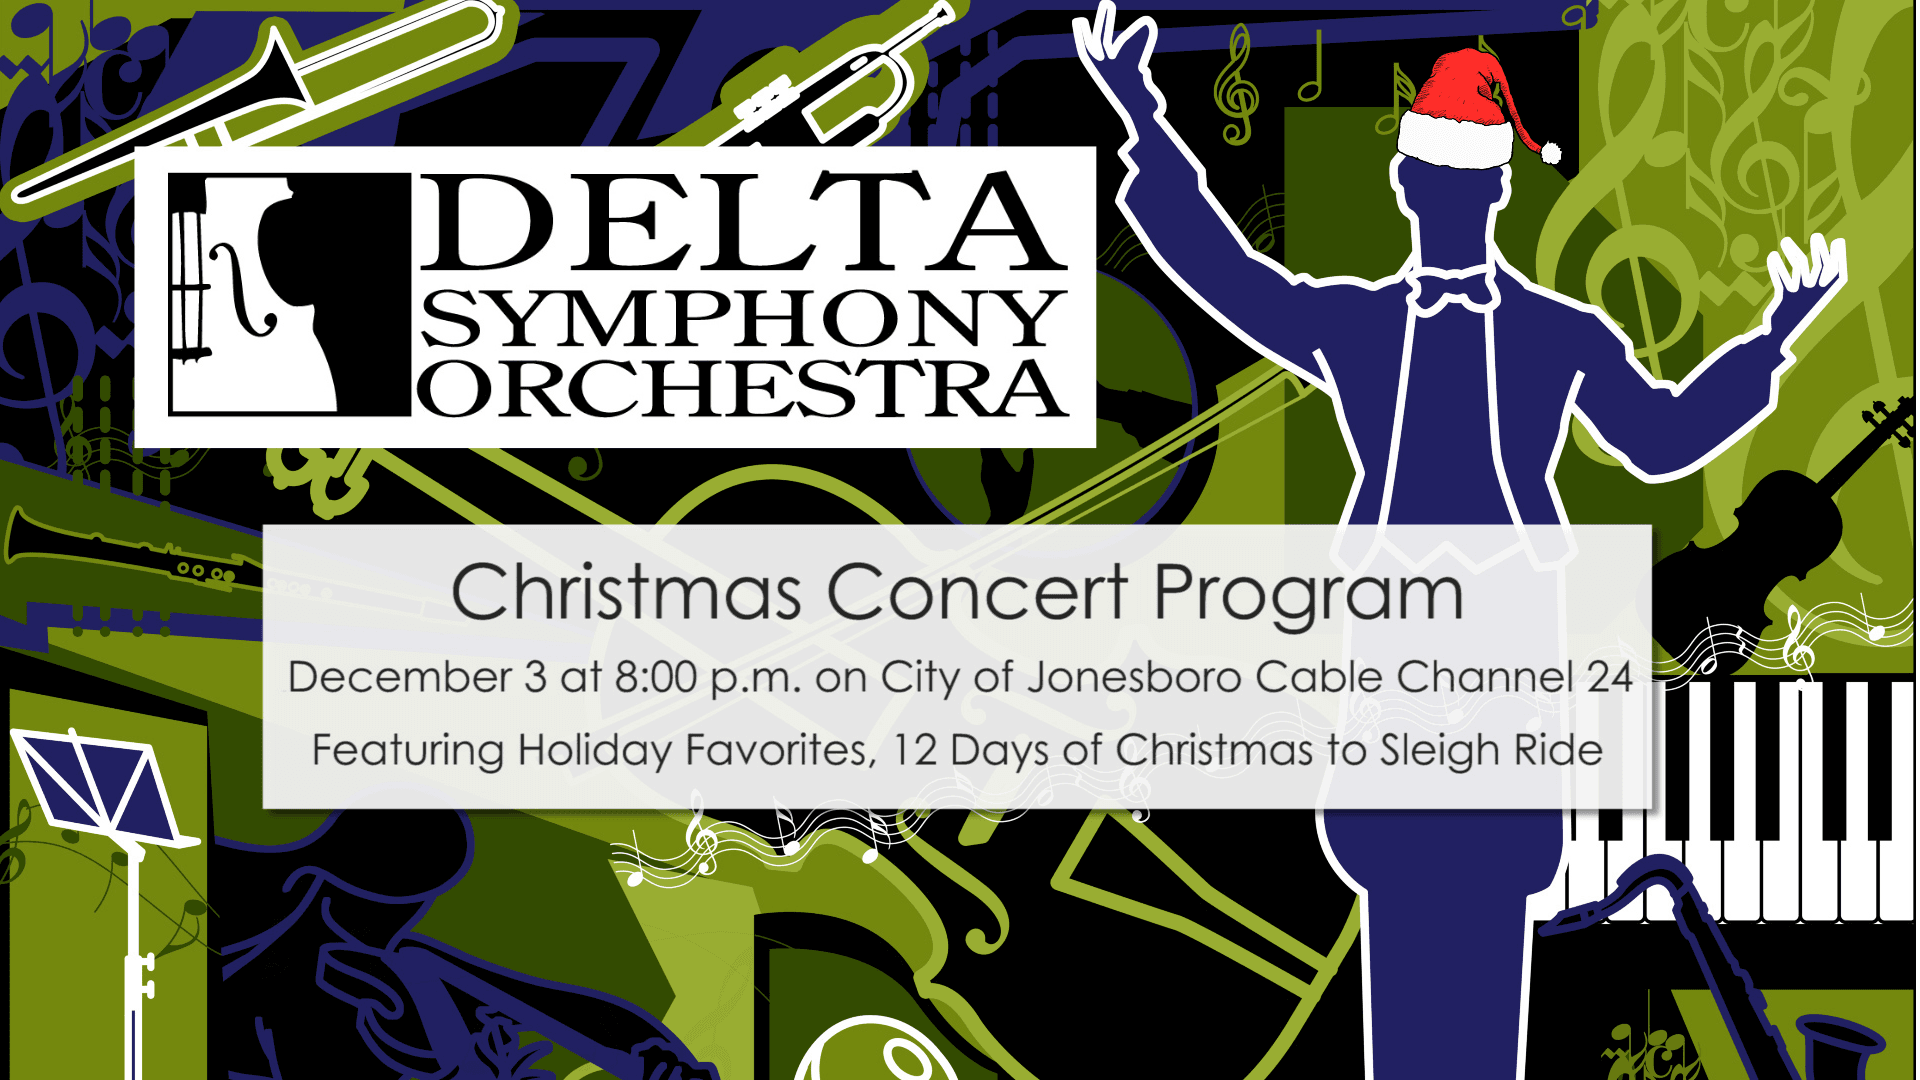 DSO Christmas Concert Promo Graphic 2020